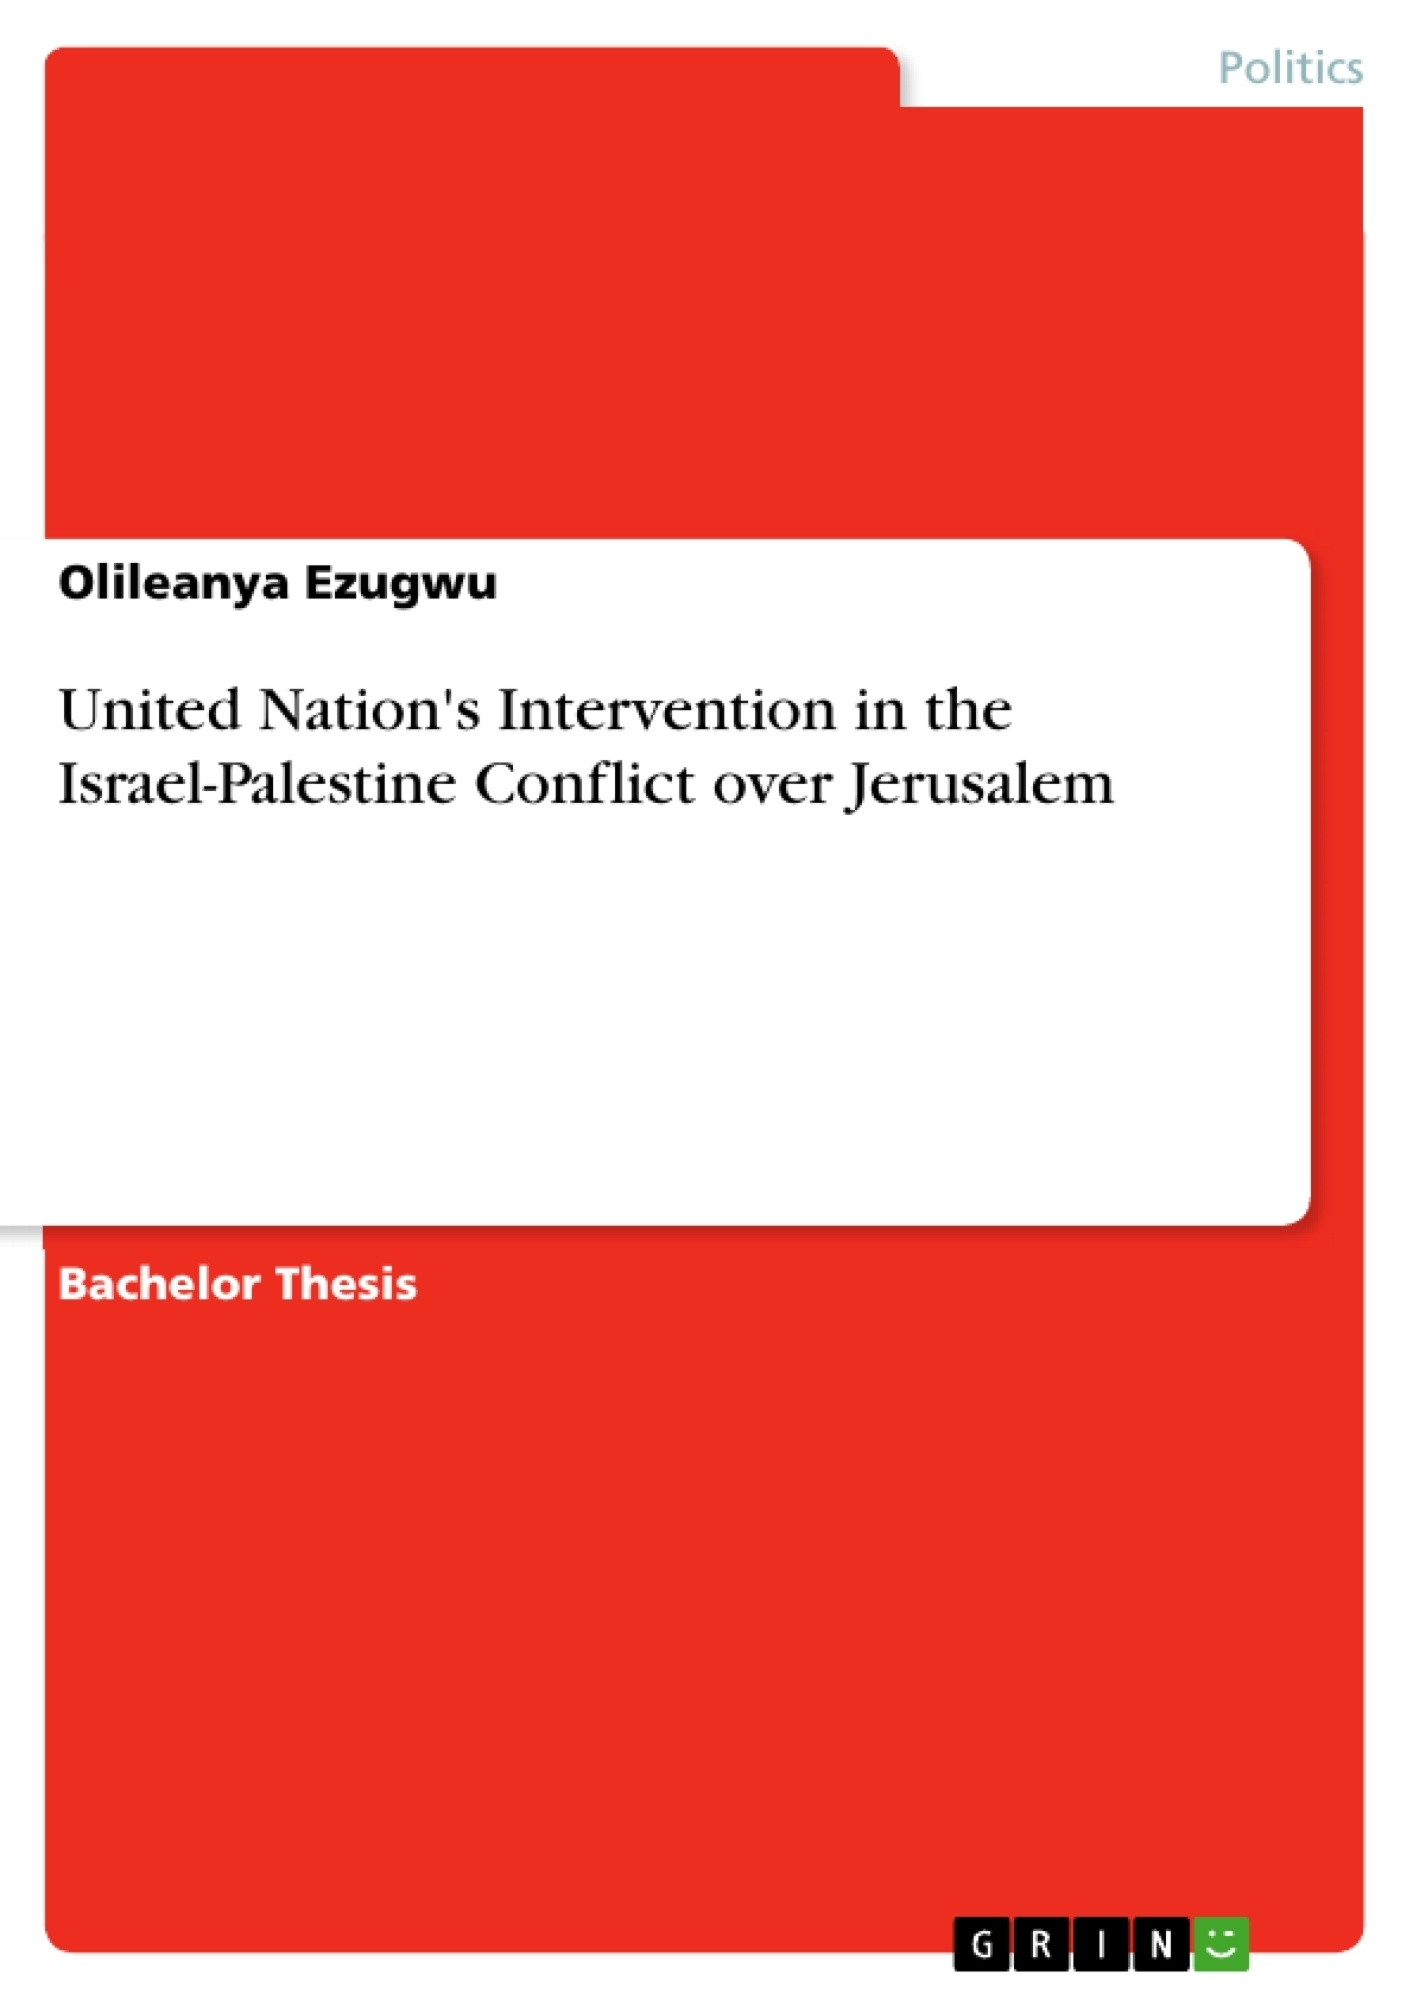 Title: United Nation's Intervention in the Israel-Palestine Conflict over Jerusalem